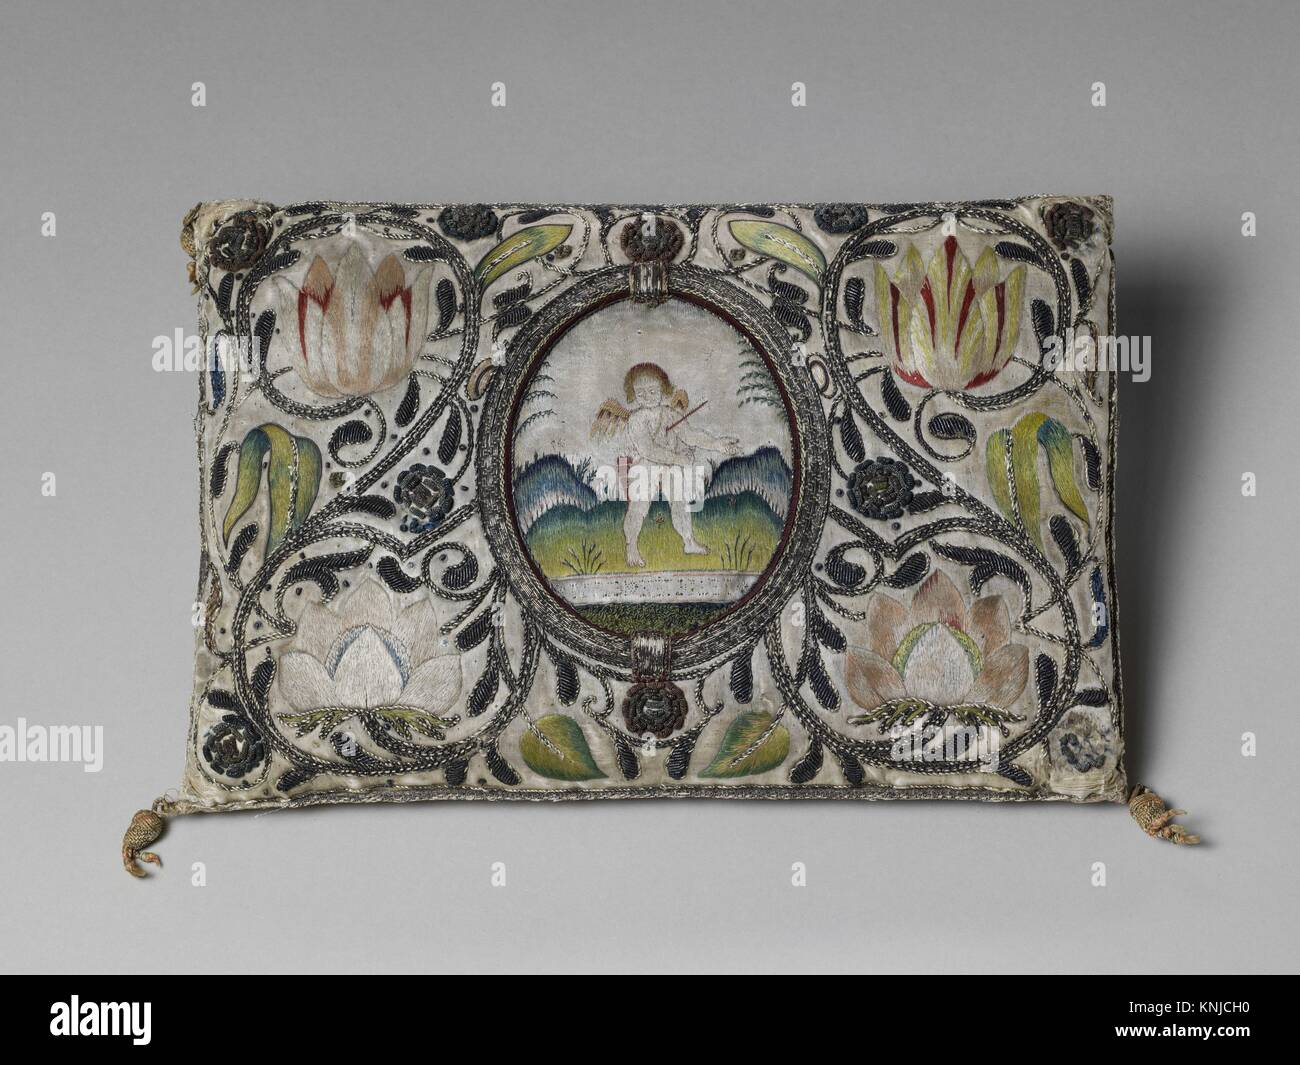 Cushion. Date: 1620-40; Culture: British or Dutch; Medium: Satin worked with silk and metal thread; satin, long - Stock Image